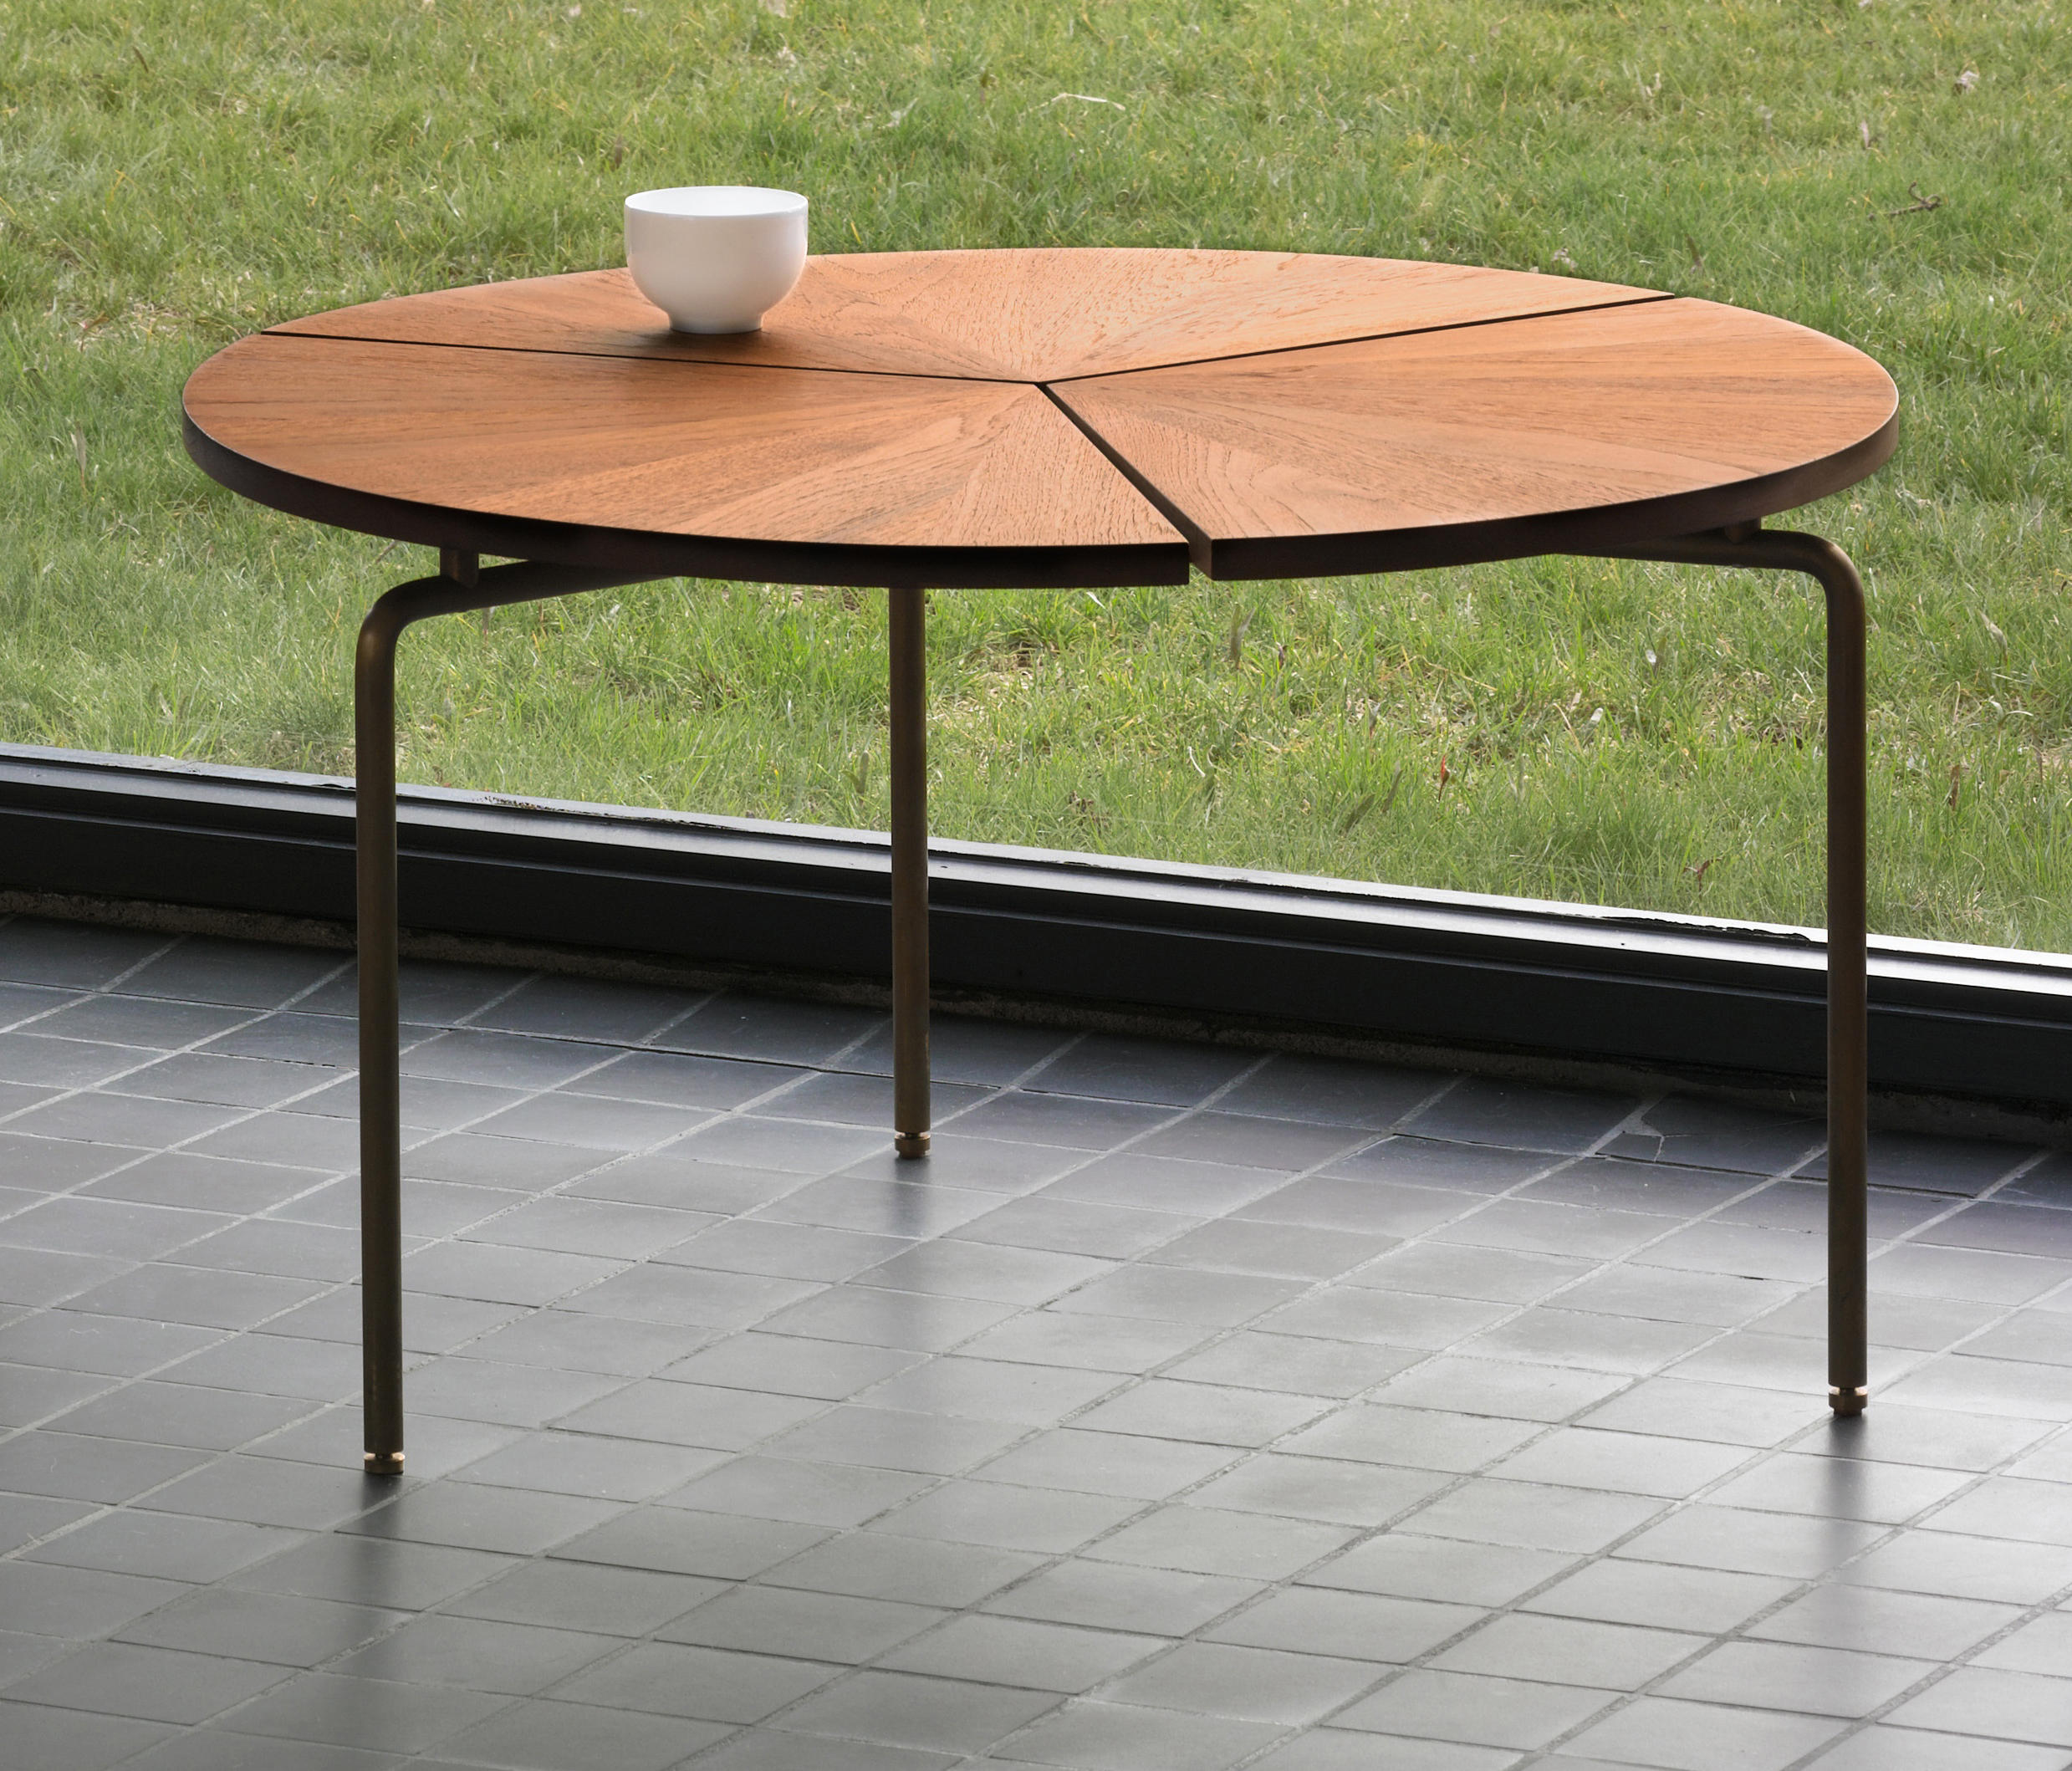 circular dining table - dining tables from bassamfellows | architonic Circular Dining Table